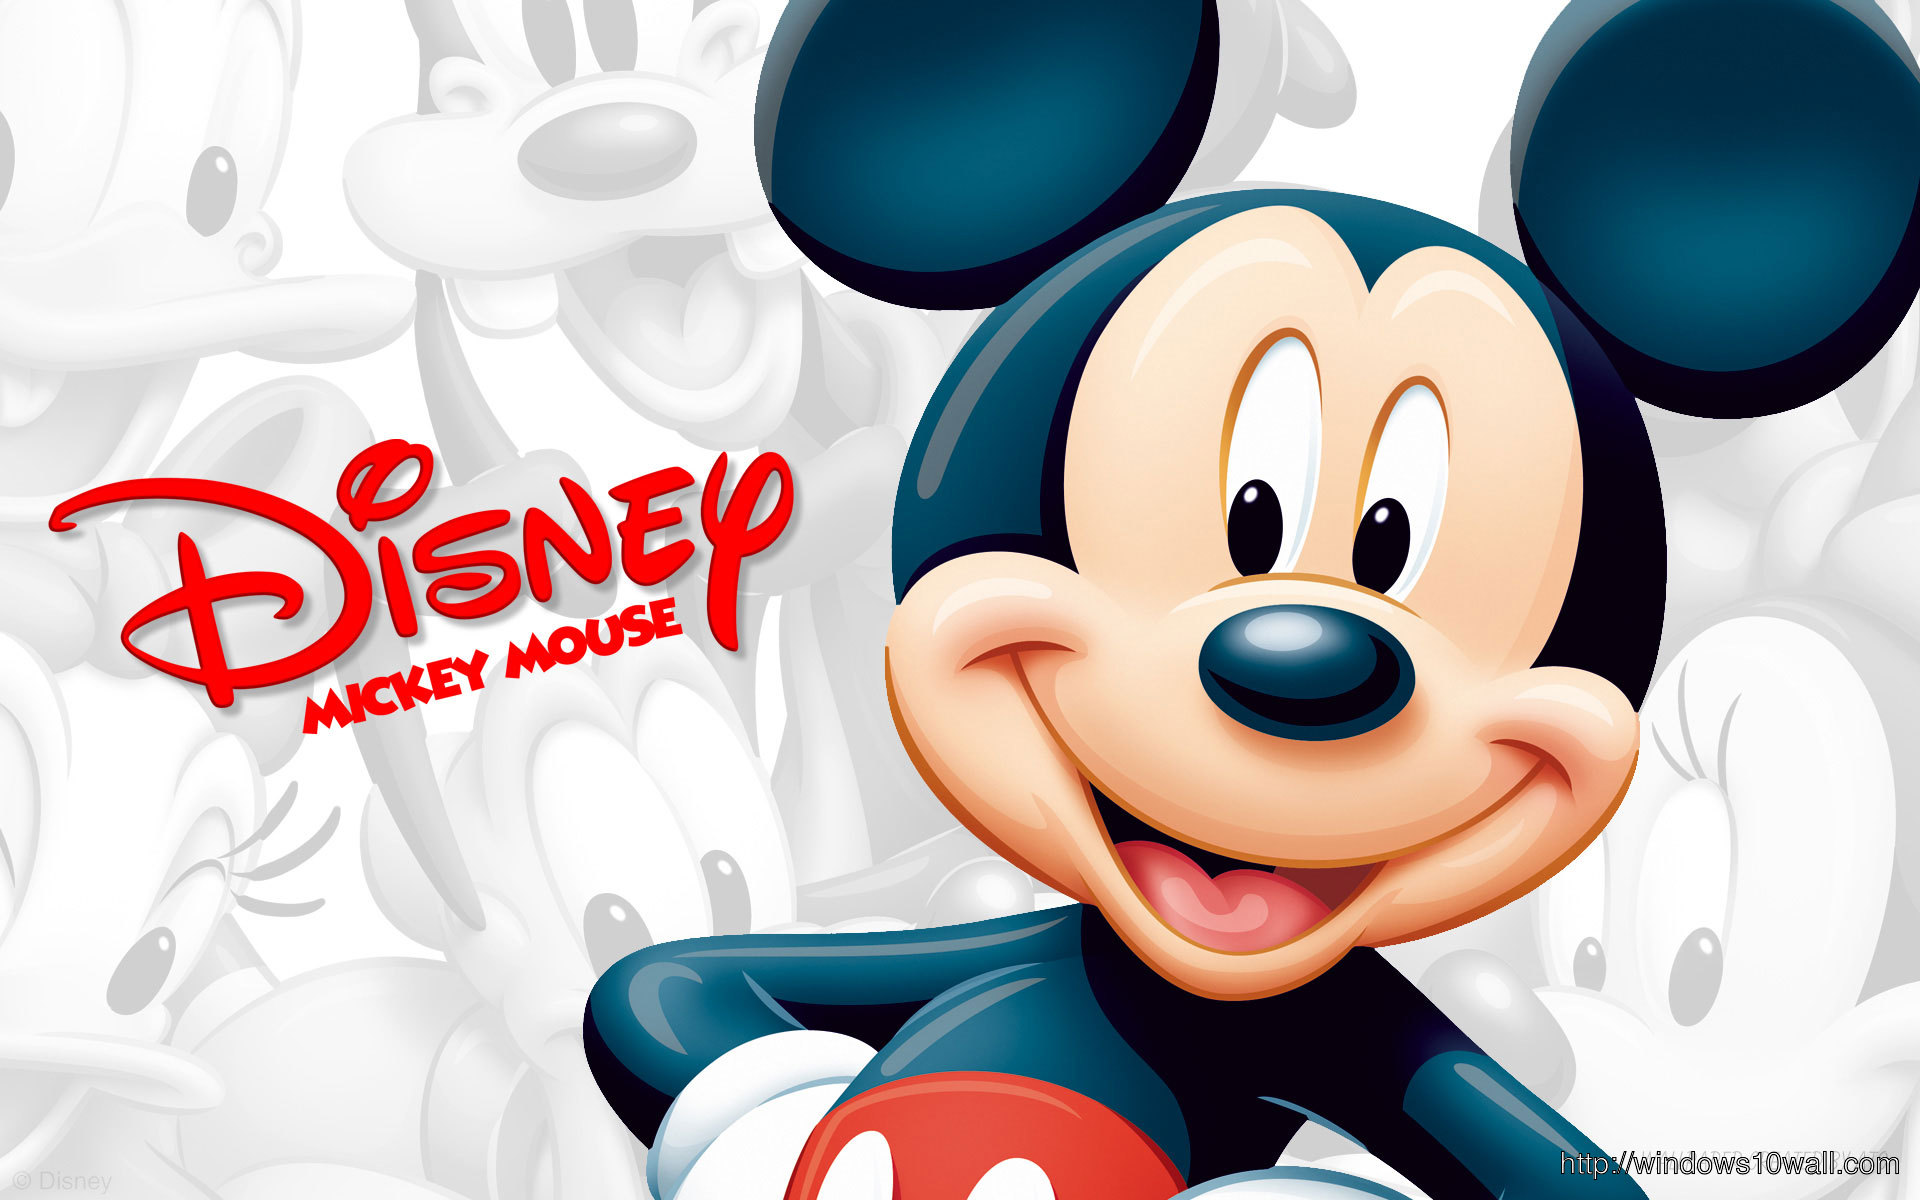 Mickey Mouse Hd Desktop Background Wallpaper